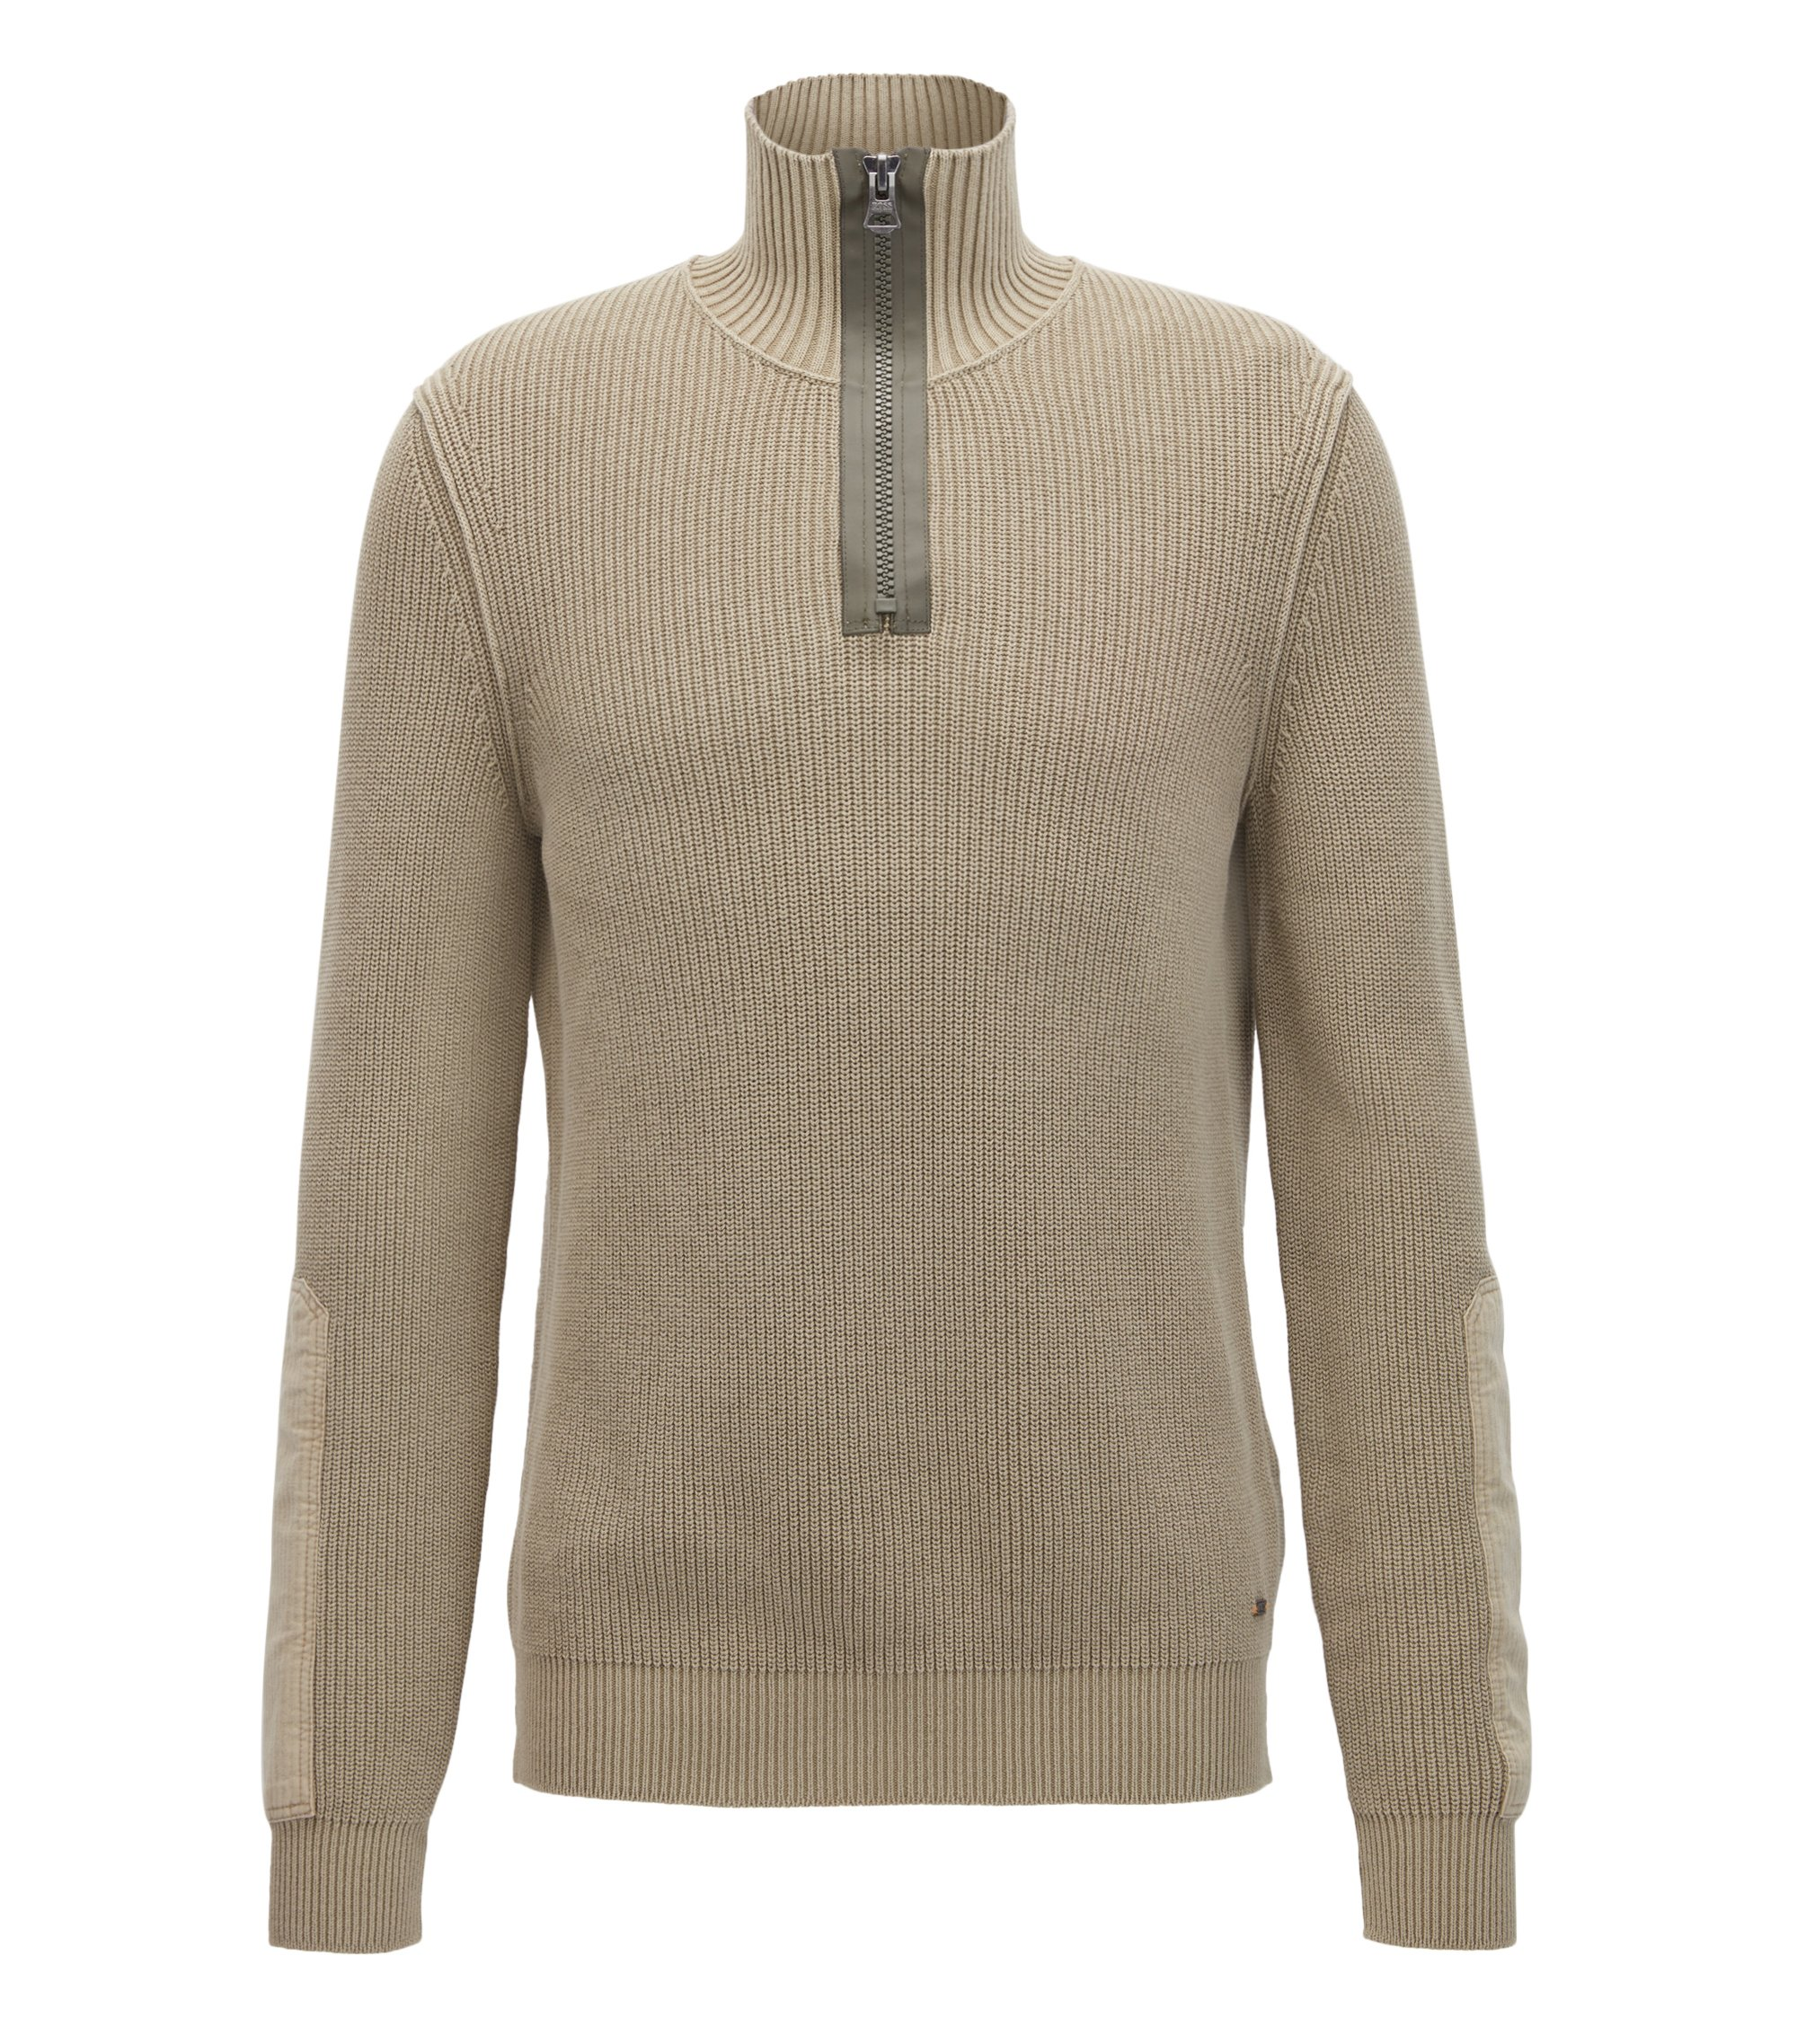 Stonewashed herringbone-knit cotton sweater with chunky-zip neck, Beige